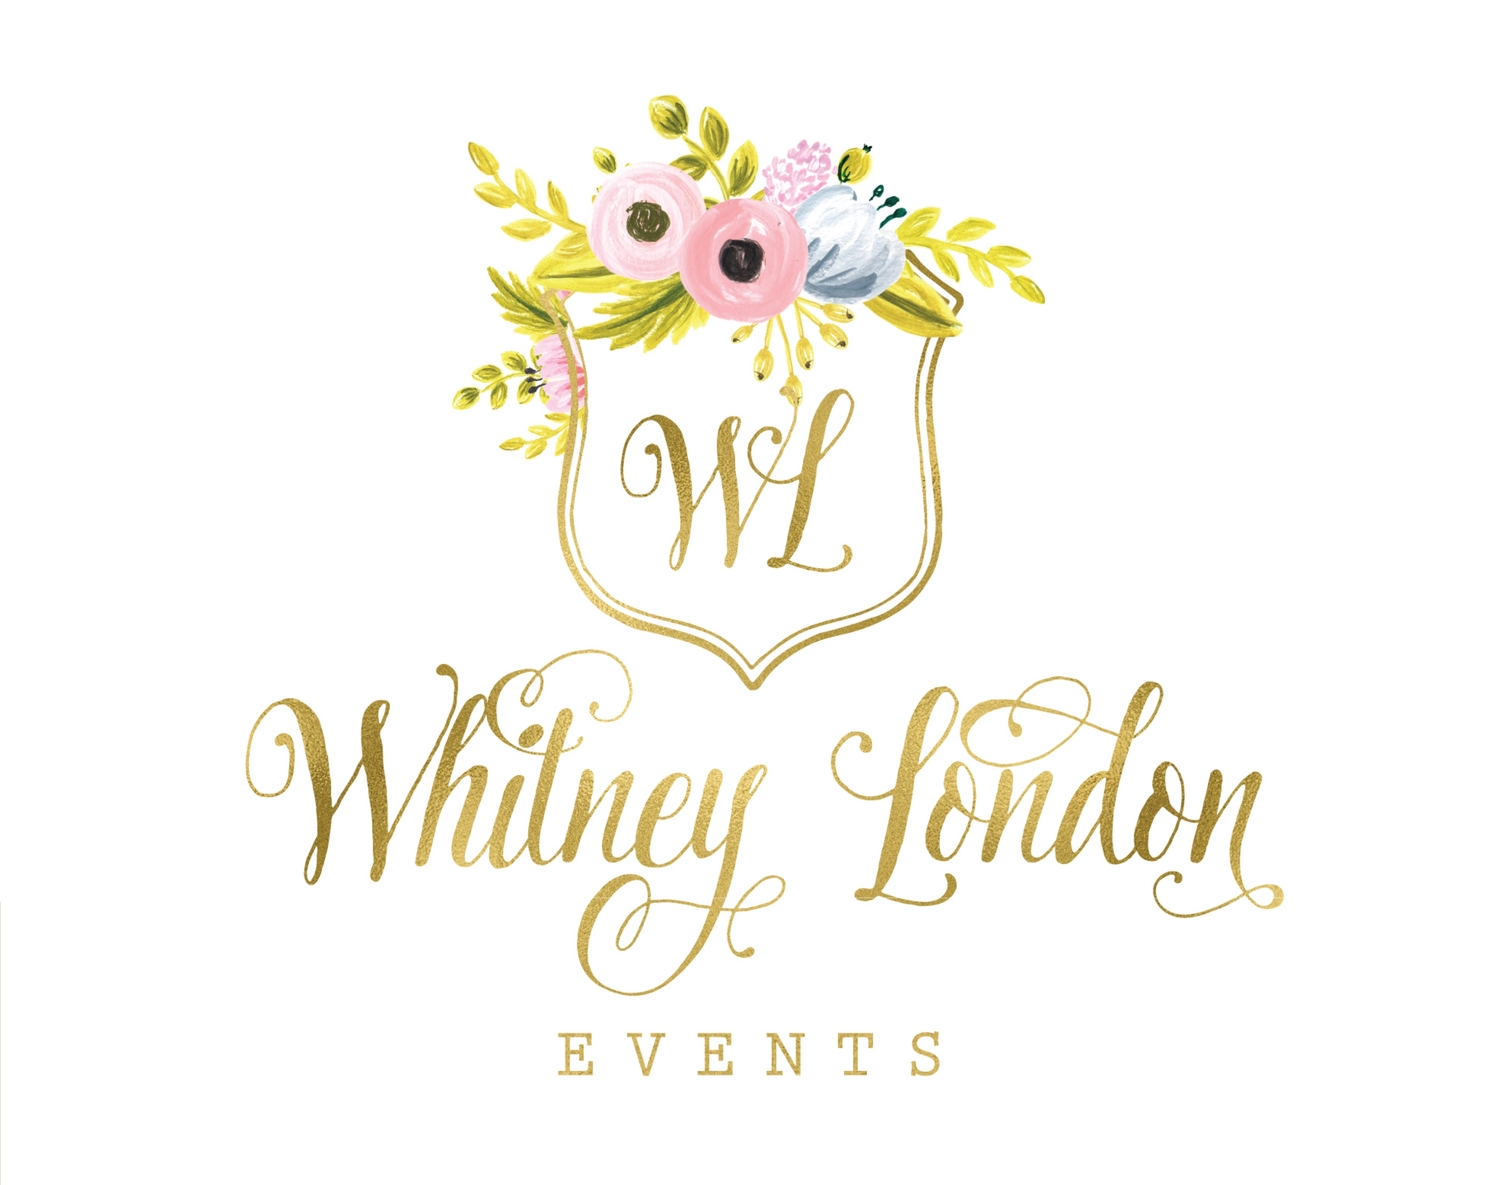 Whitney London Events